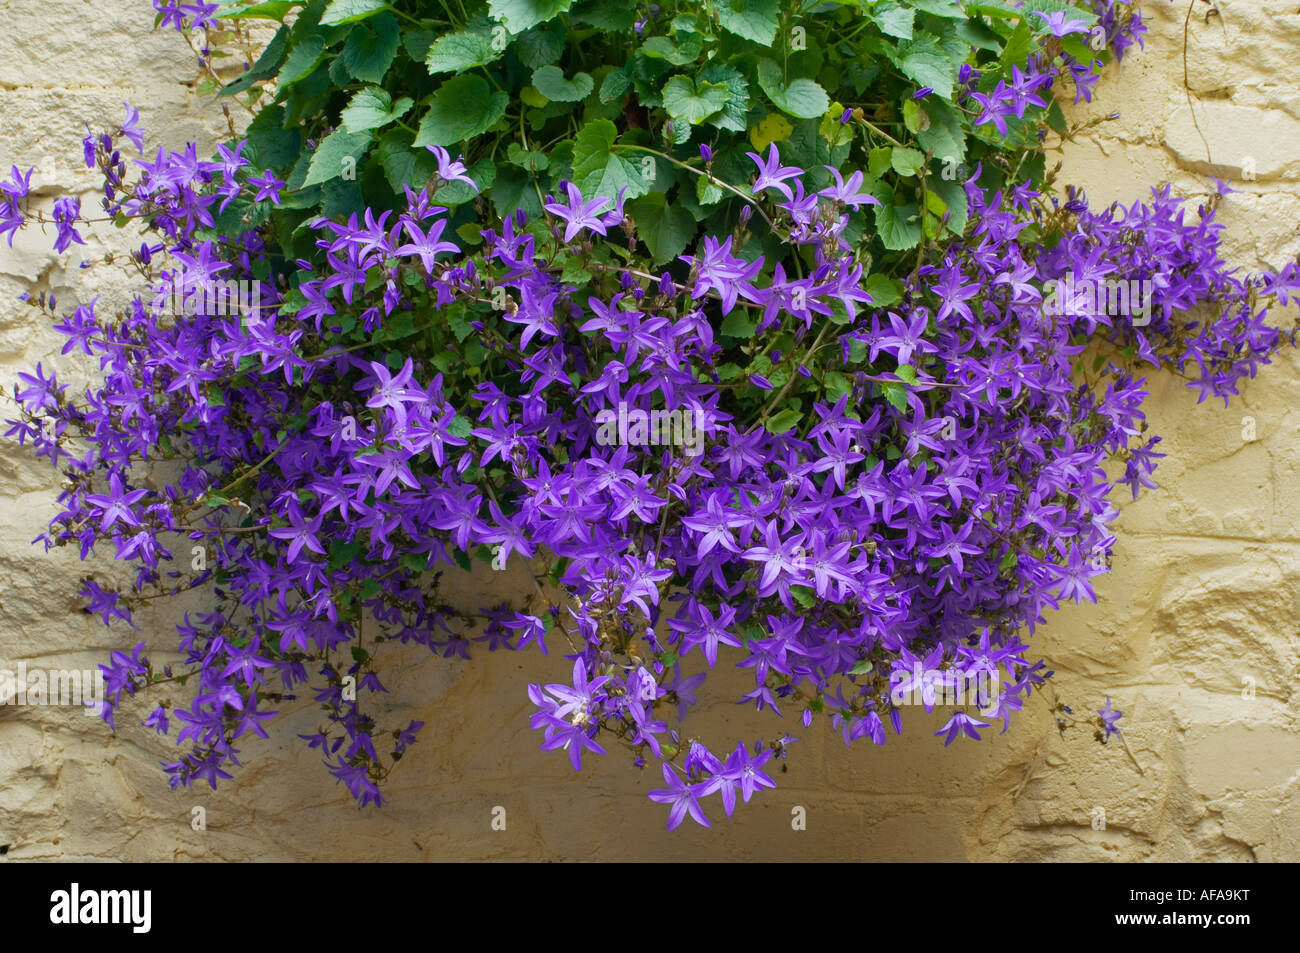 Wall Hanging Basket With Green Foliage And Pretty Purple Flowers